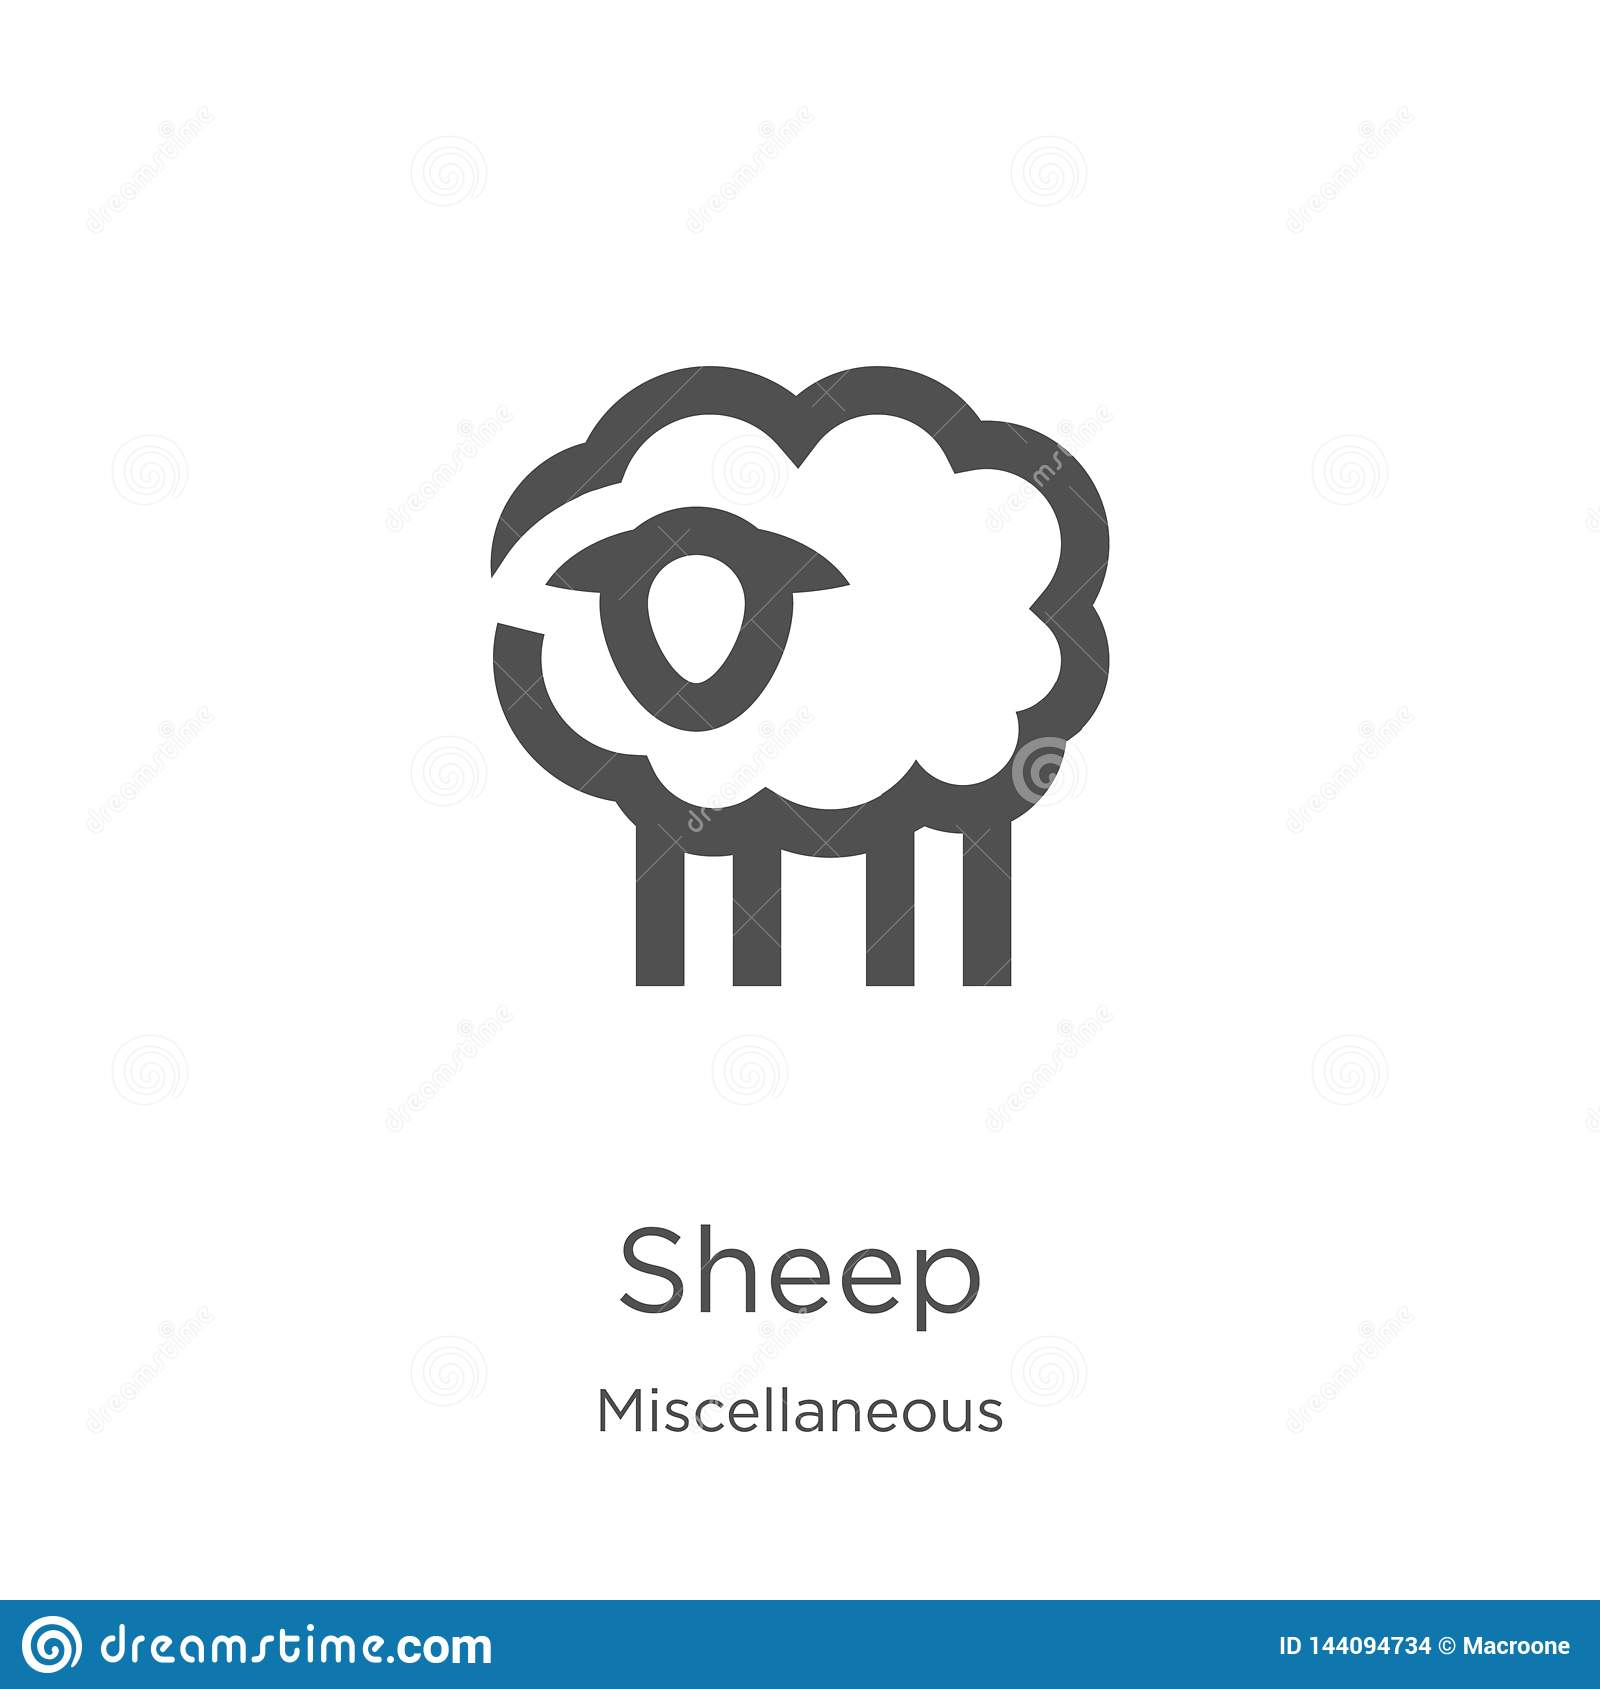 sheep icon vector from miscellaneous collection. Thin line sheep outline icon vector illustration. Outline, thin line sheep icon